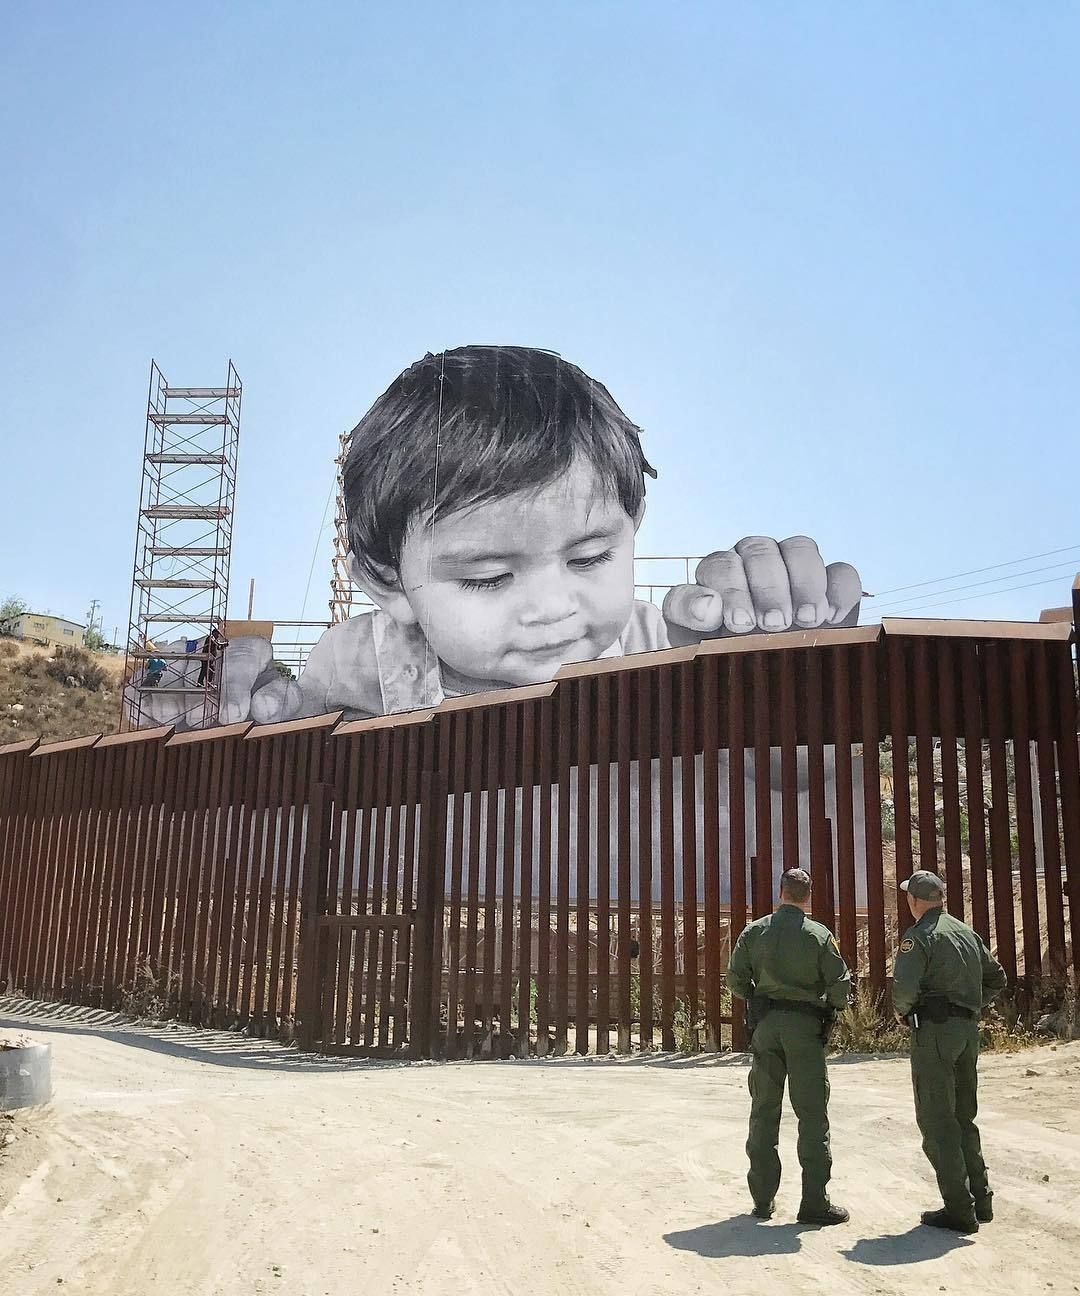 """itscolossal: """"A Child Peers Over the US/Mexico Border Wall in a Giant New Photographic Work by JR """""""